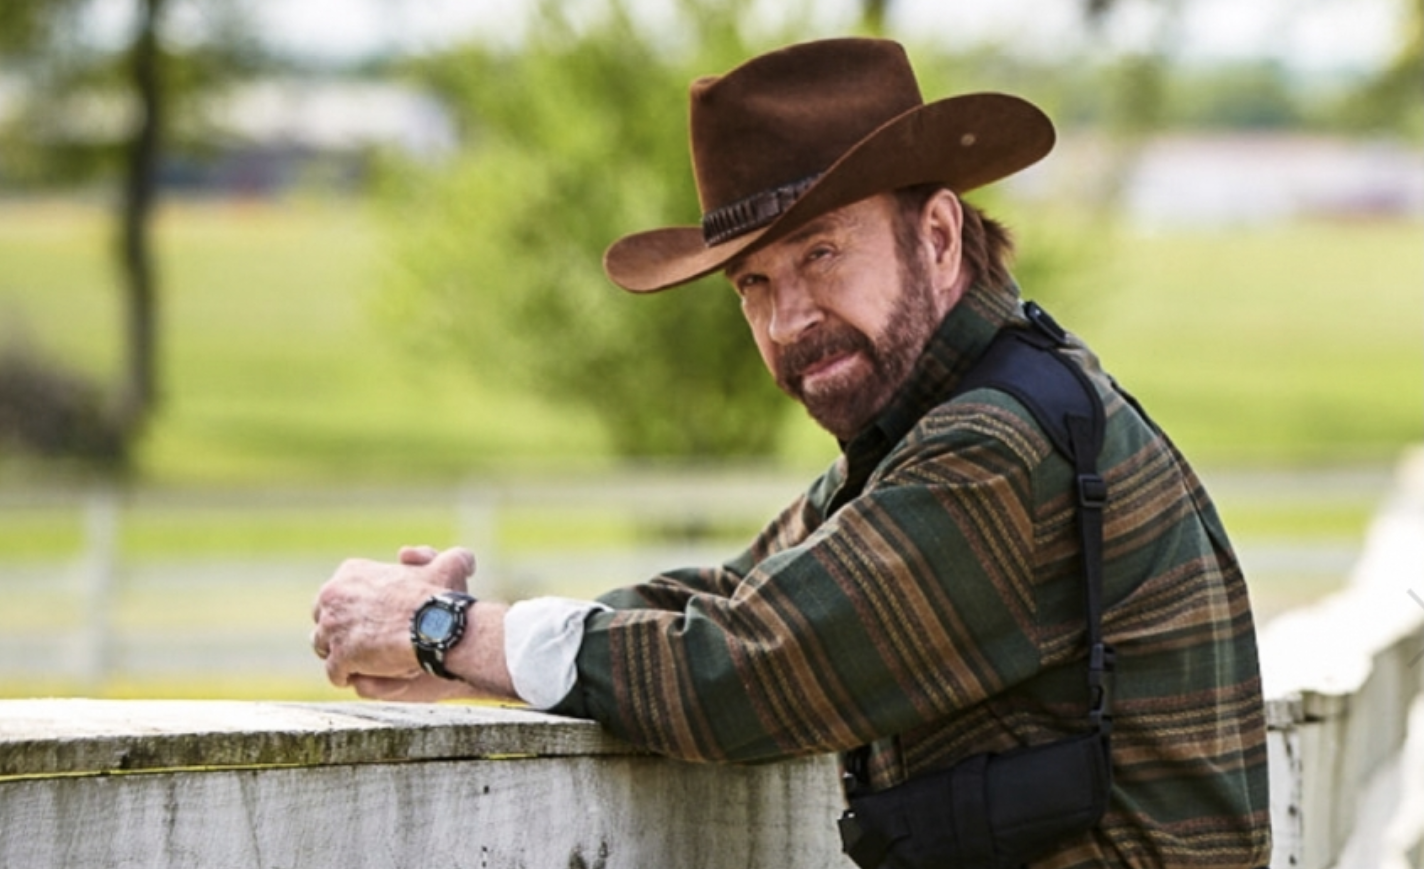 Chuck Norris slammed for becoming the face of Glock: 'So sad to see you're just a sponsor now'